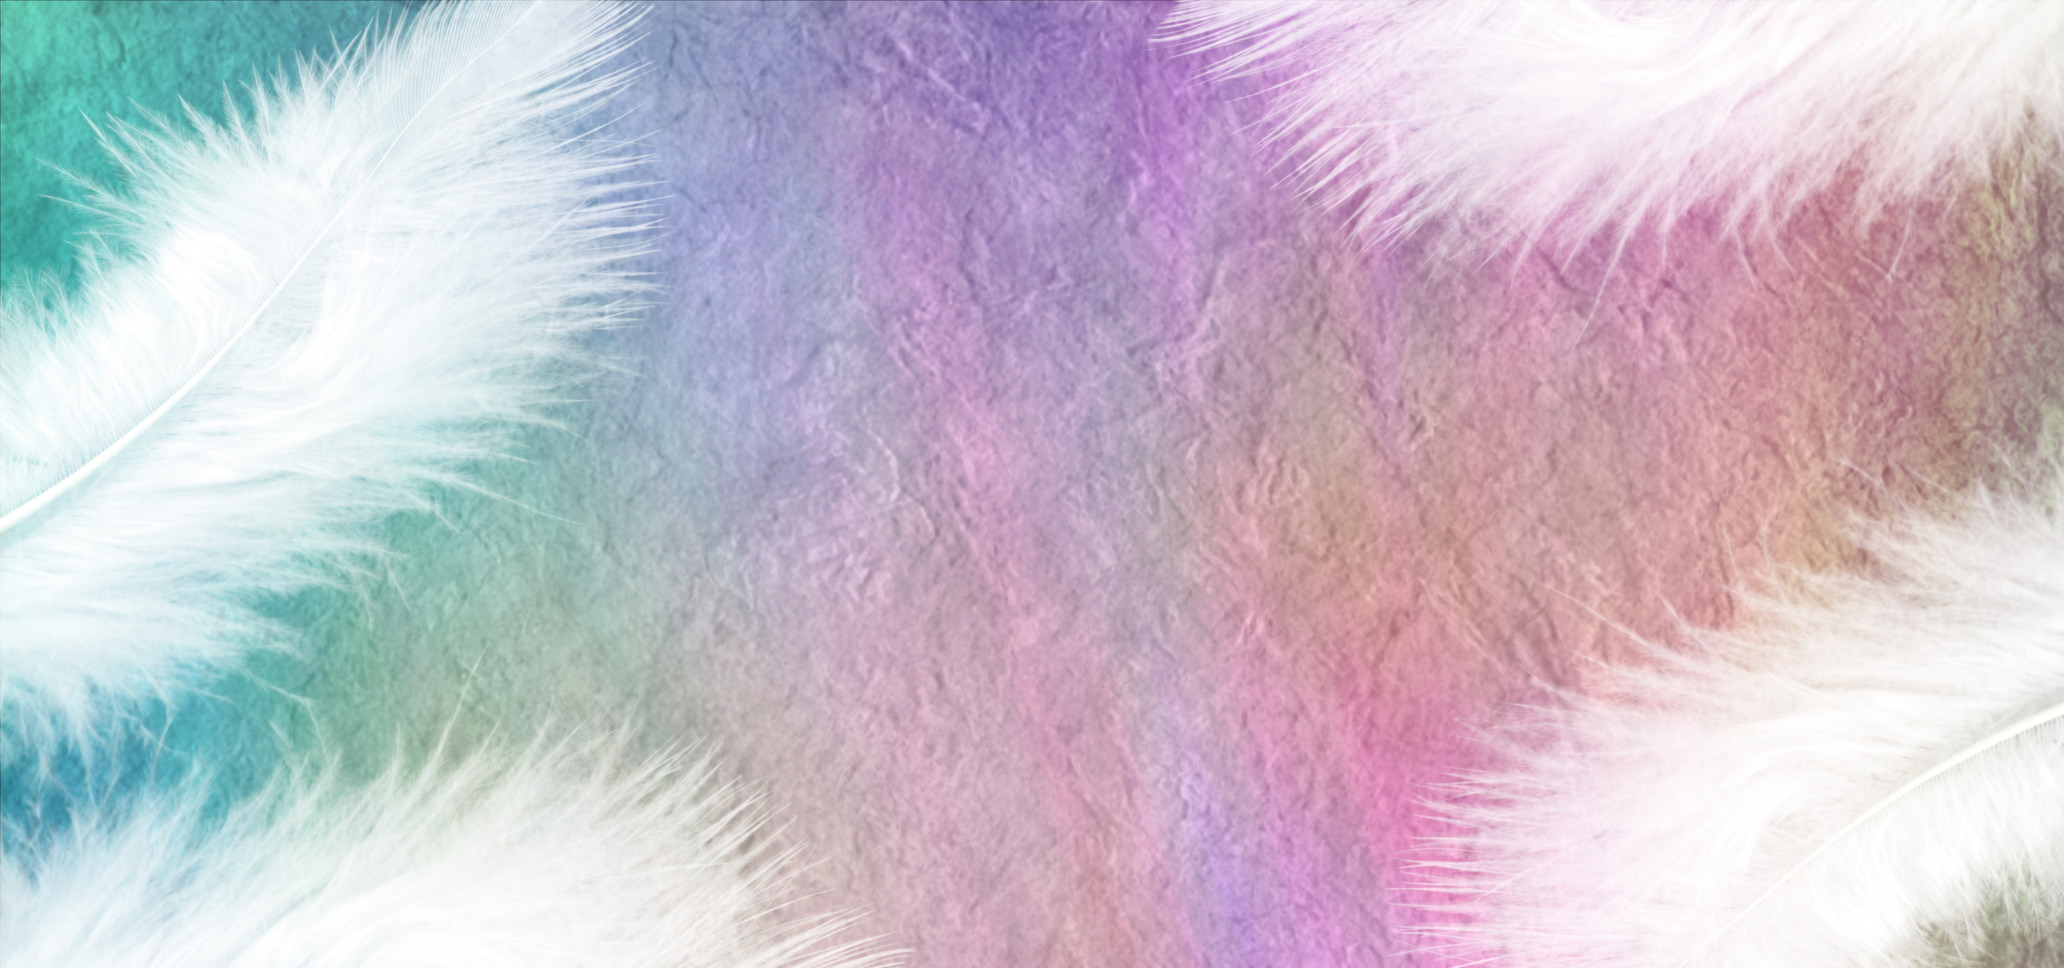 photodune-11768497-white-feathers-on-a-rainbow-stone-effect-background-m.jpg